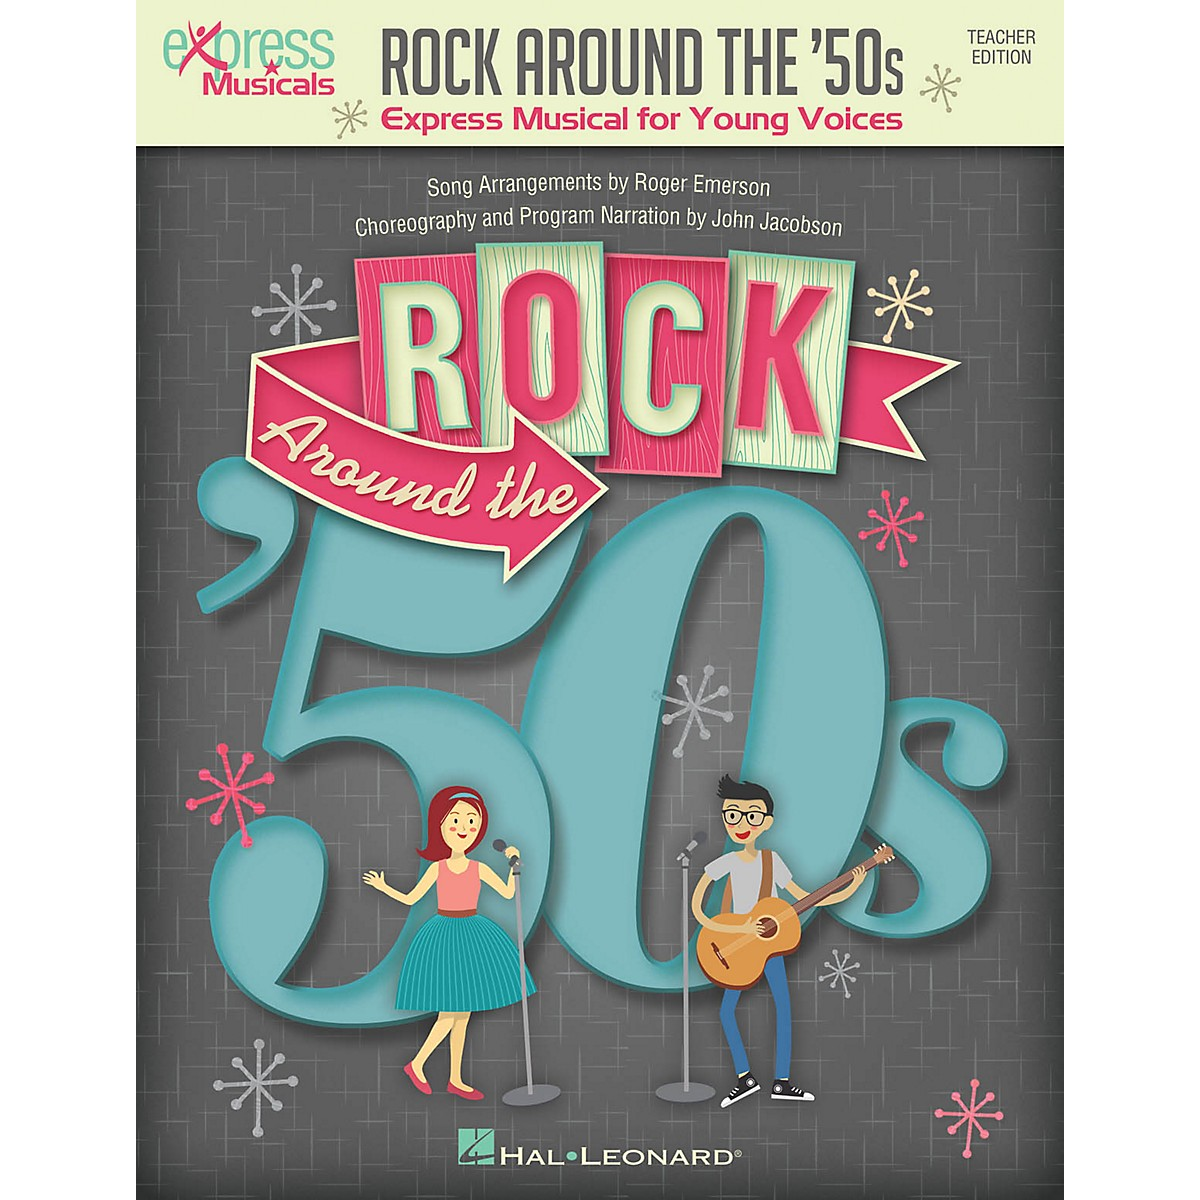 Hal Leonard Rock Around the '50s (Express Musical for Young Voices) by Roger Emerson Performance Kit with Audio Download